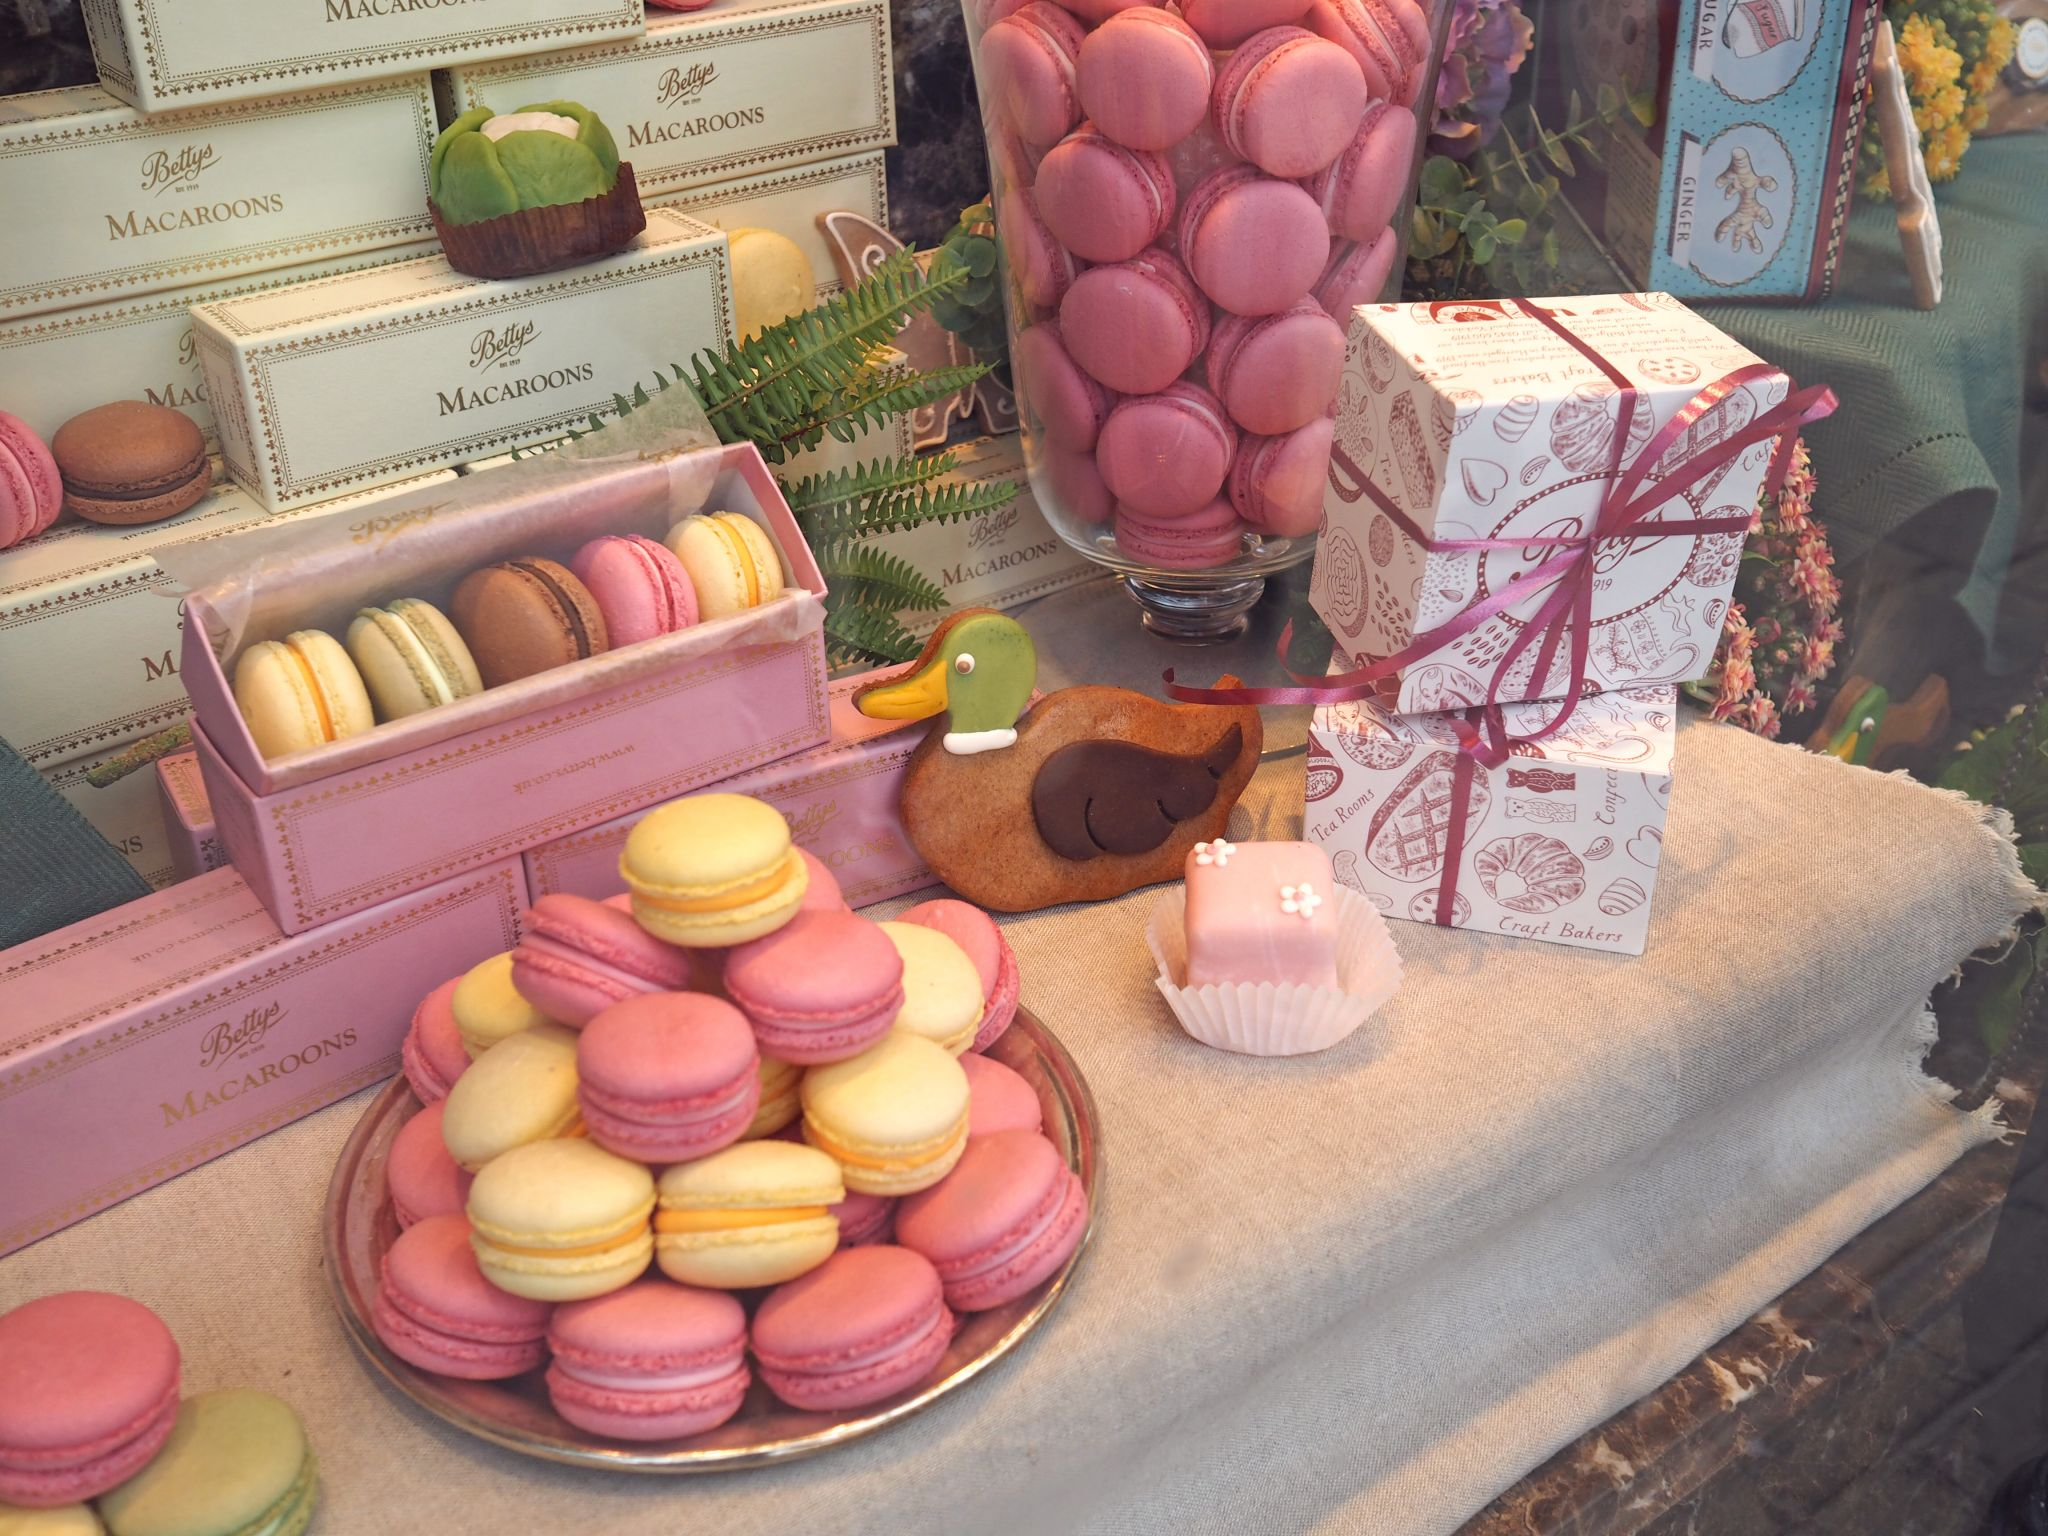 Bettys Harrogate window macaroons